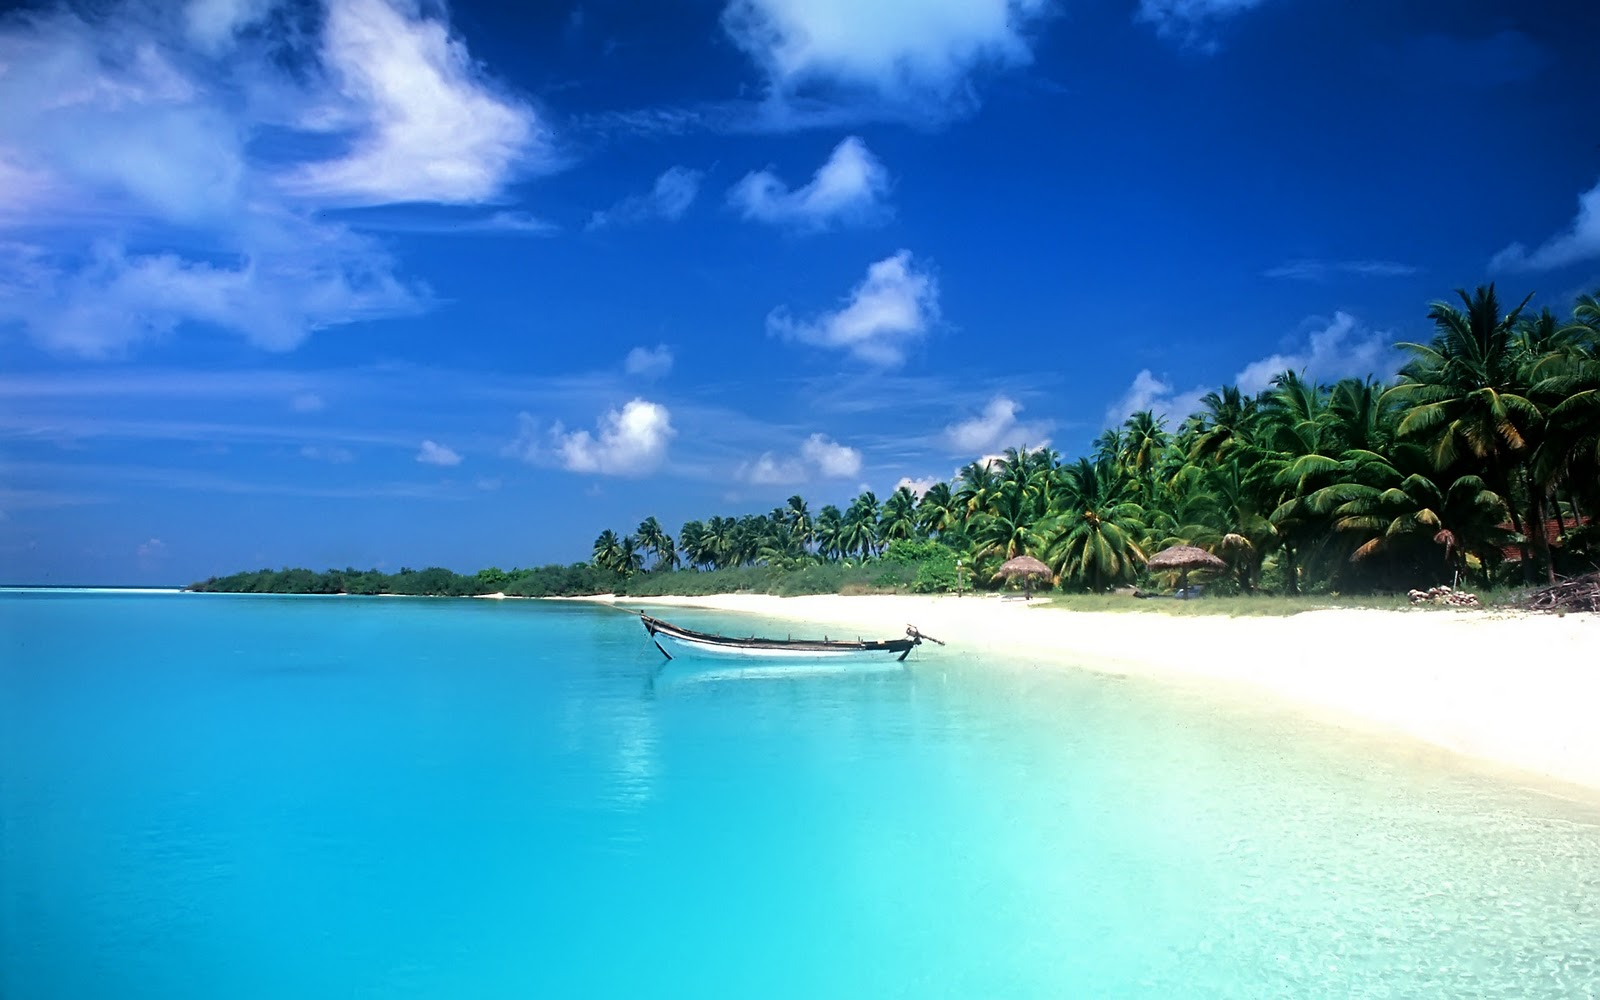 beach-wallpaper-for-desktop.jpg